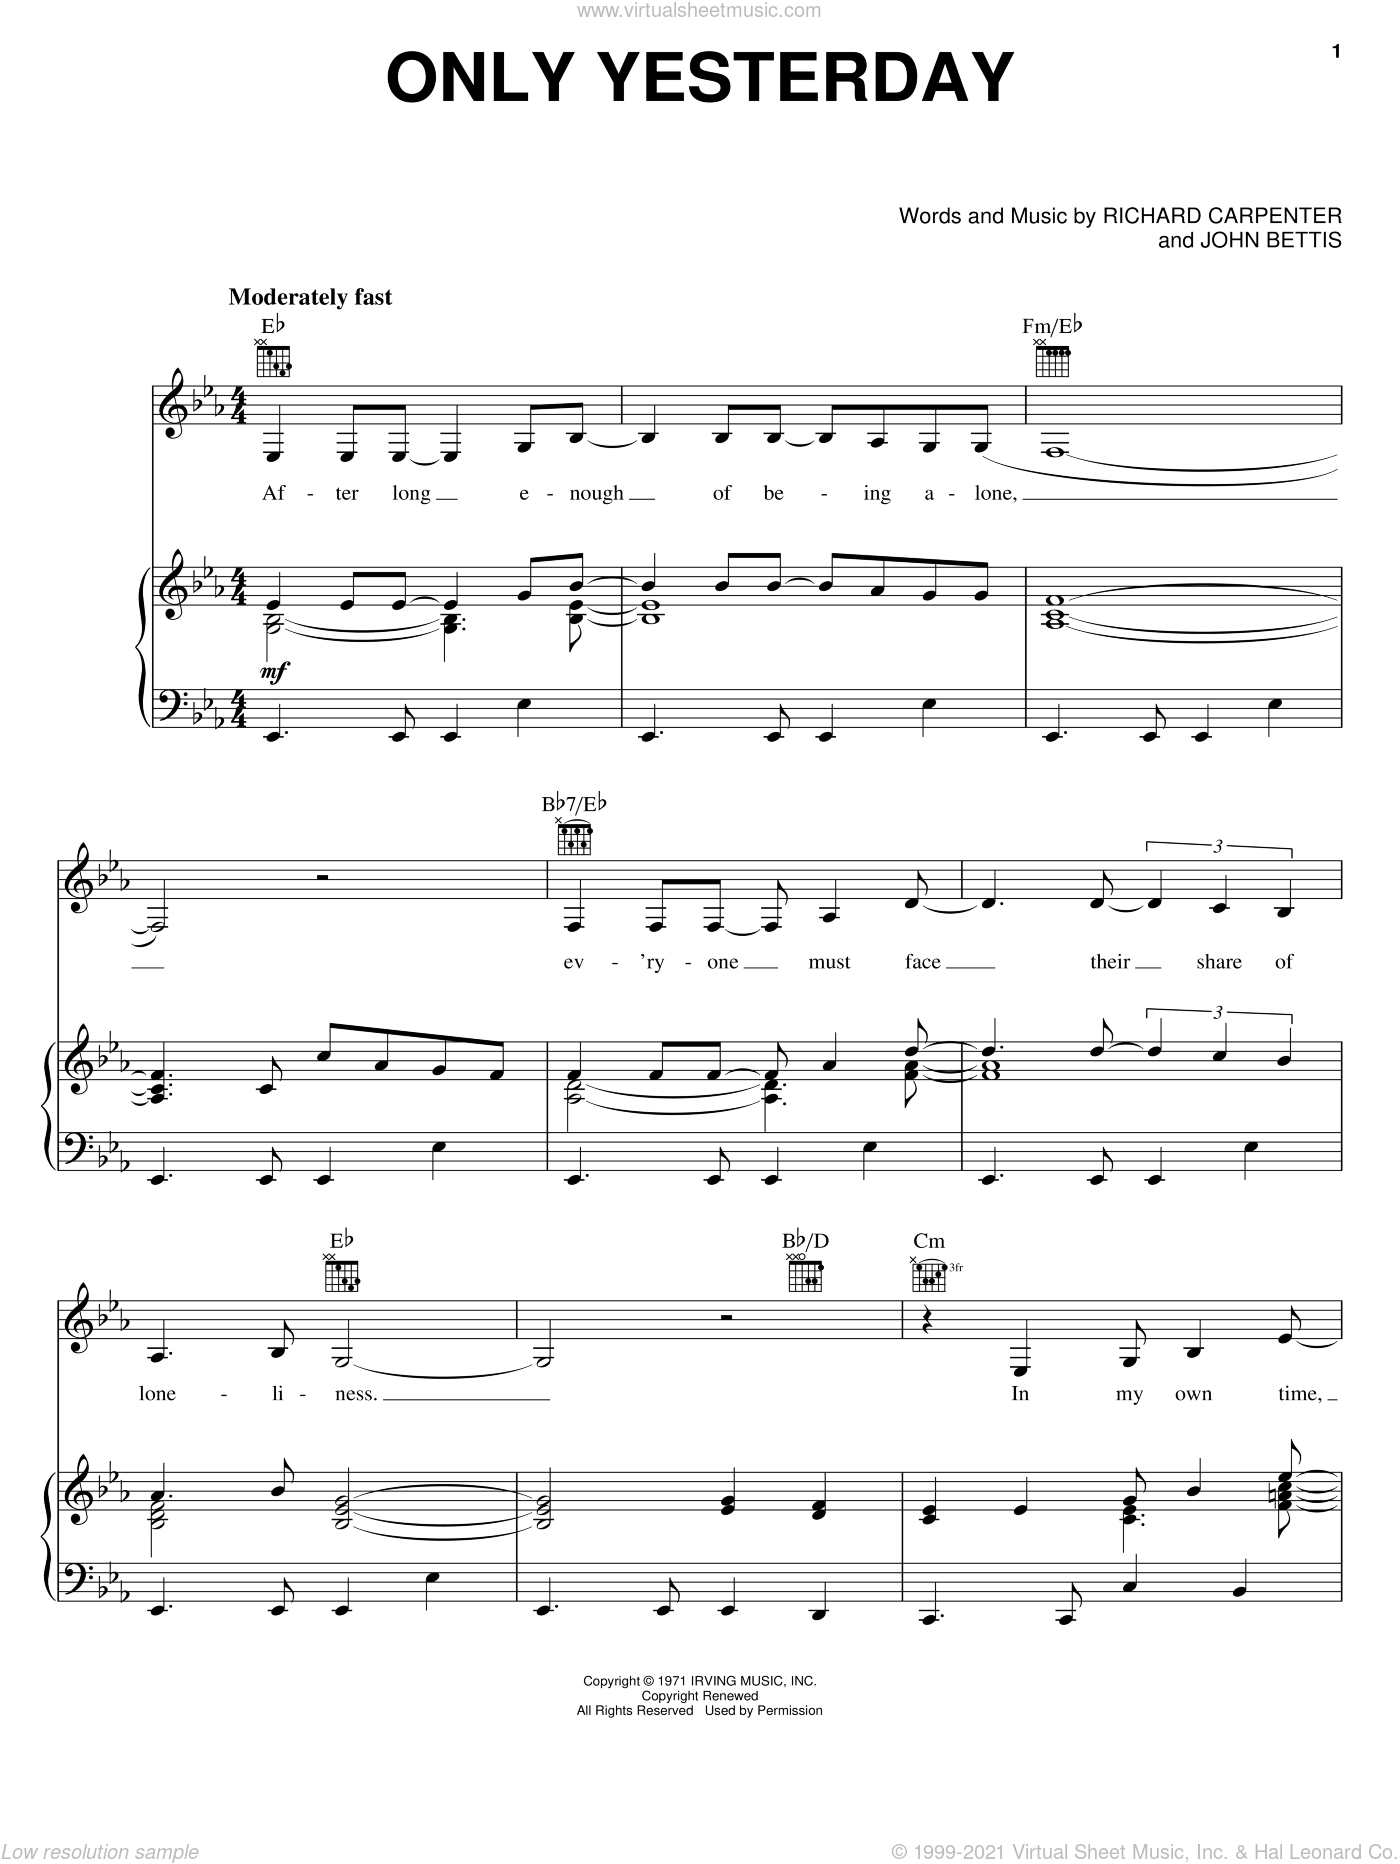 Only Yesterday sheet music for voice, piano or guitar by Carpenters, John Bettis and Richard Carpenter, intermediate skill level